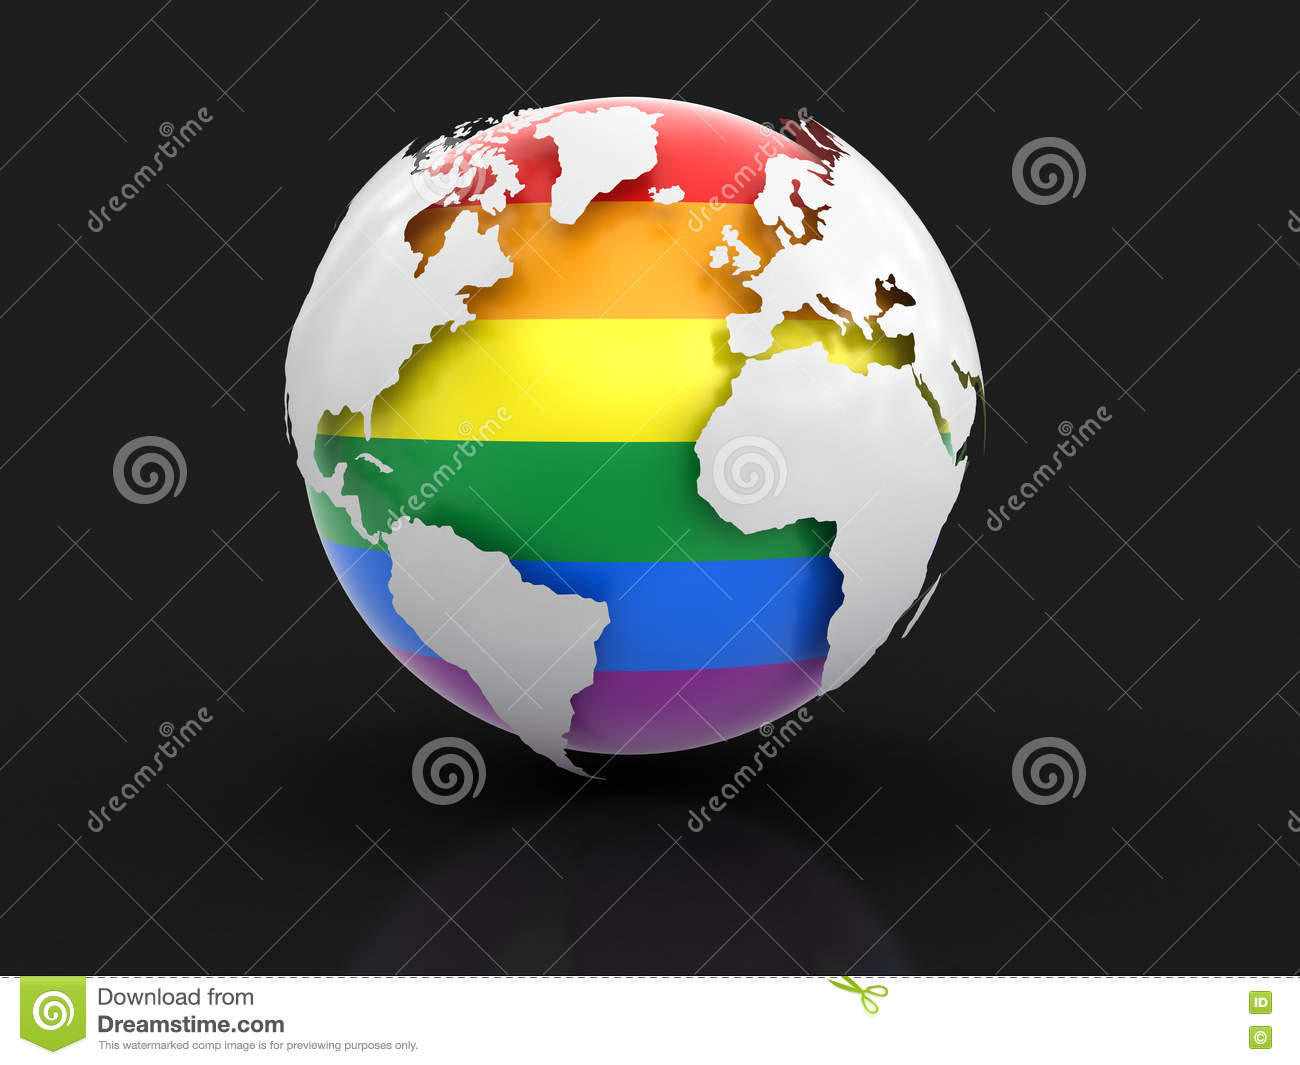 3d globe with gay pride color stock illustration - illustration of